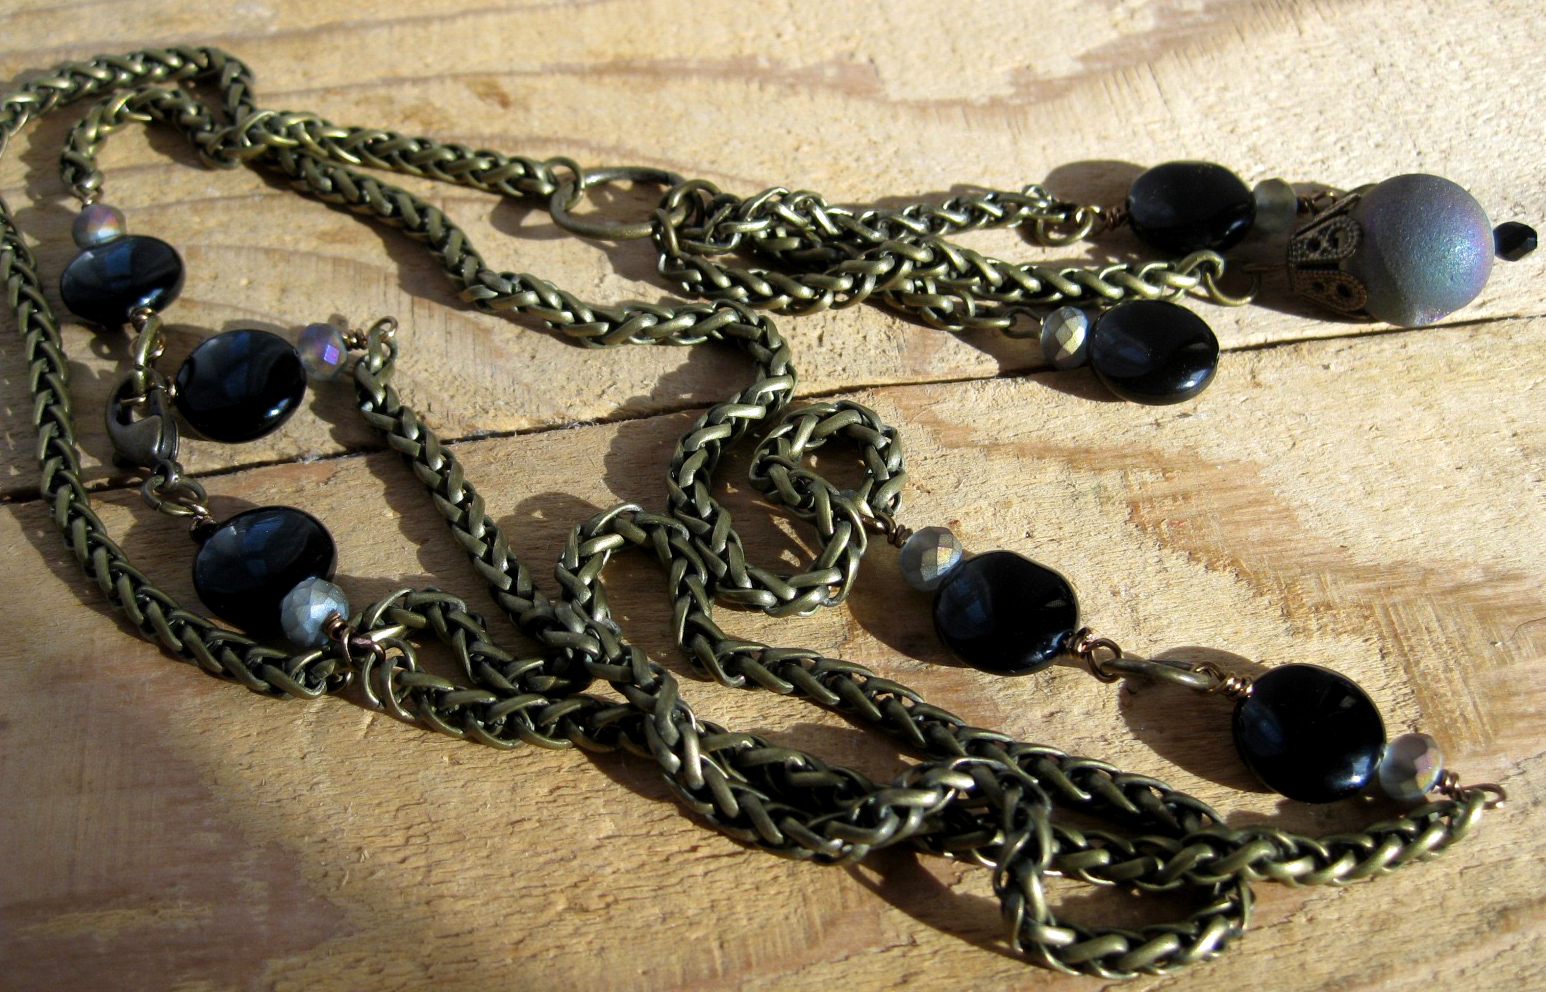 Antique Gold Mesh Necklace with Black Glass & Purple Quartz Druzzy Beads